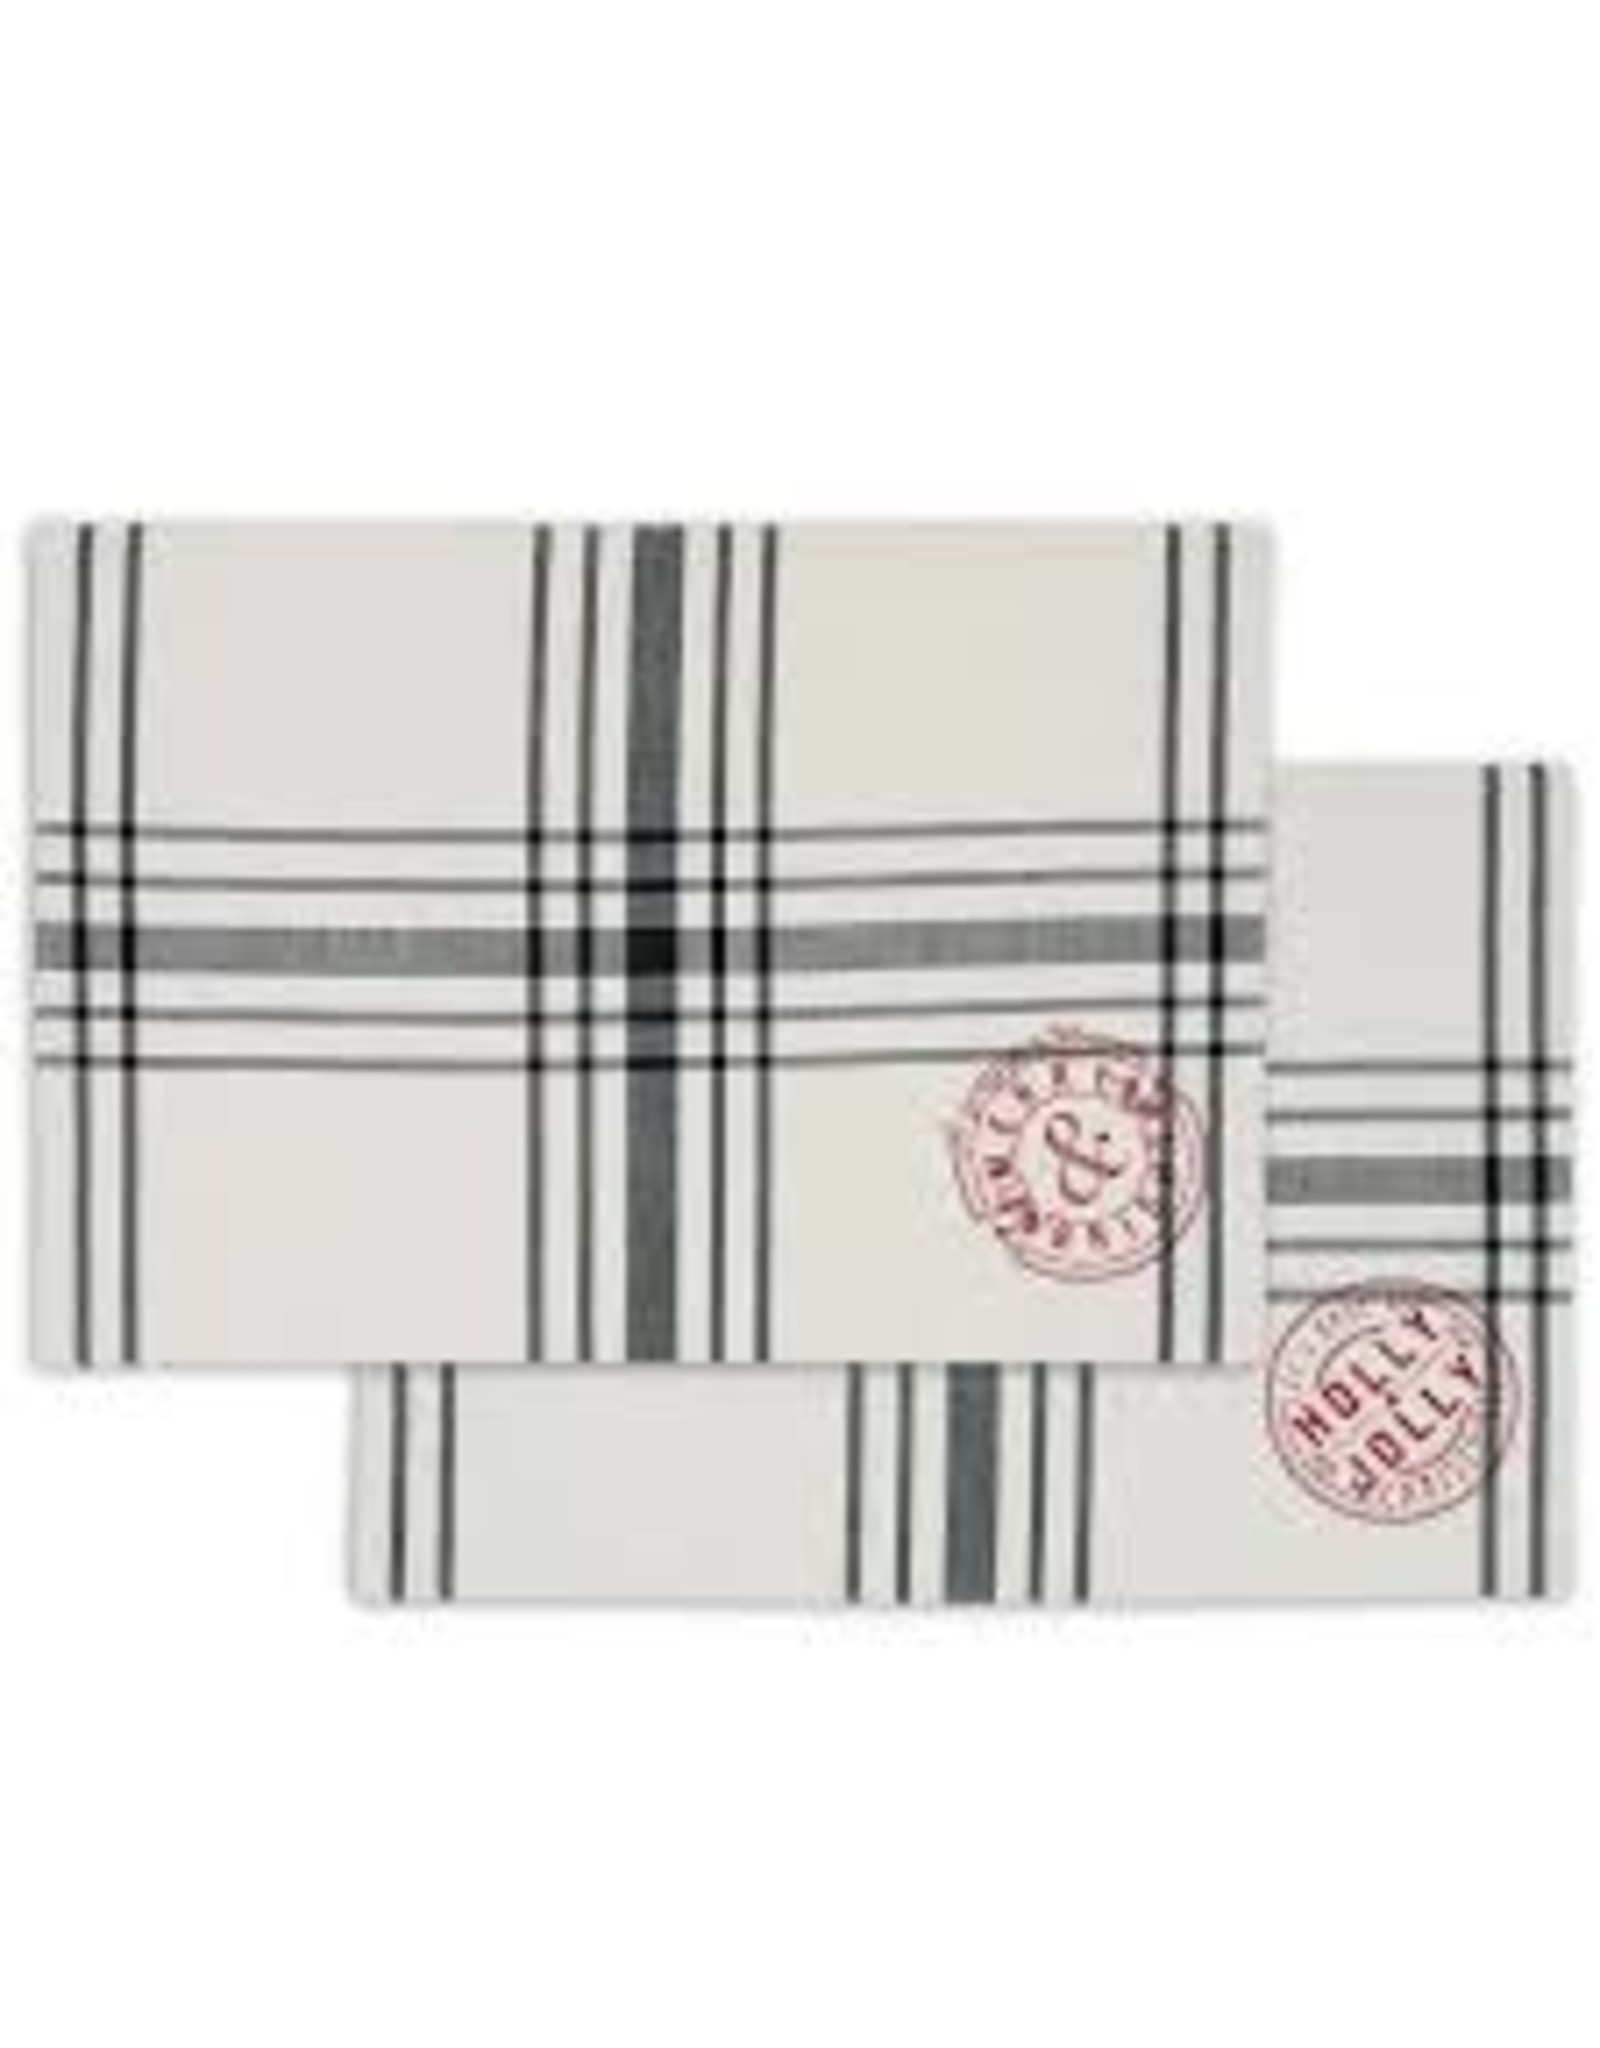 Design Imports DI Vintage Stamp Placemats